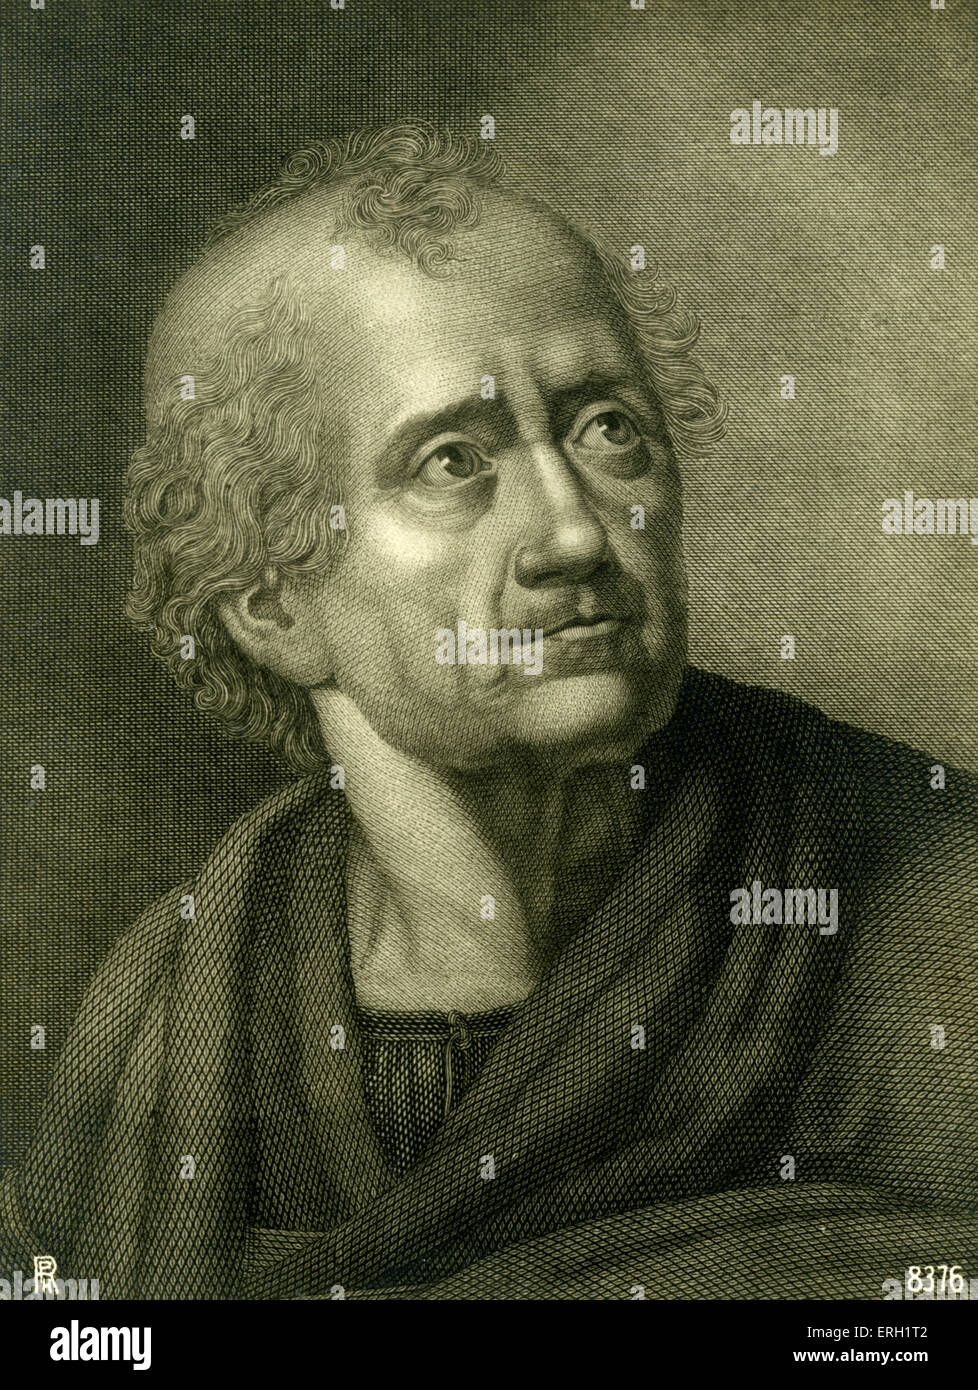 KLOPSTOCK, Friedrich German poet, 1724-1803 - wrote text with Mahler for M's Resurrection in 2nd symphony - Stock Image